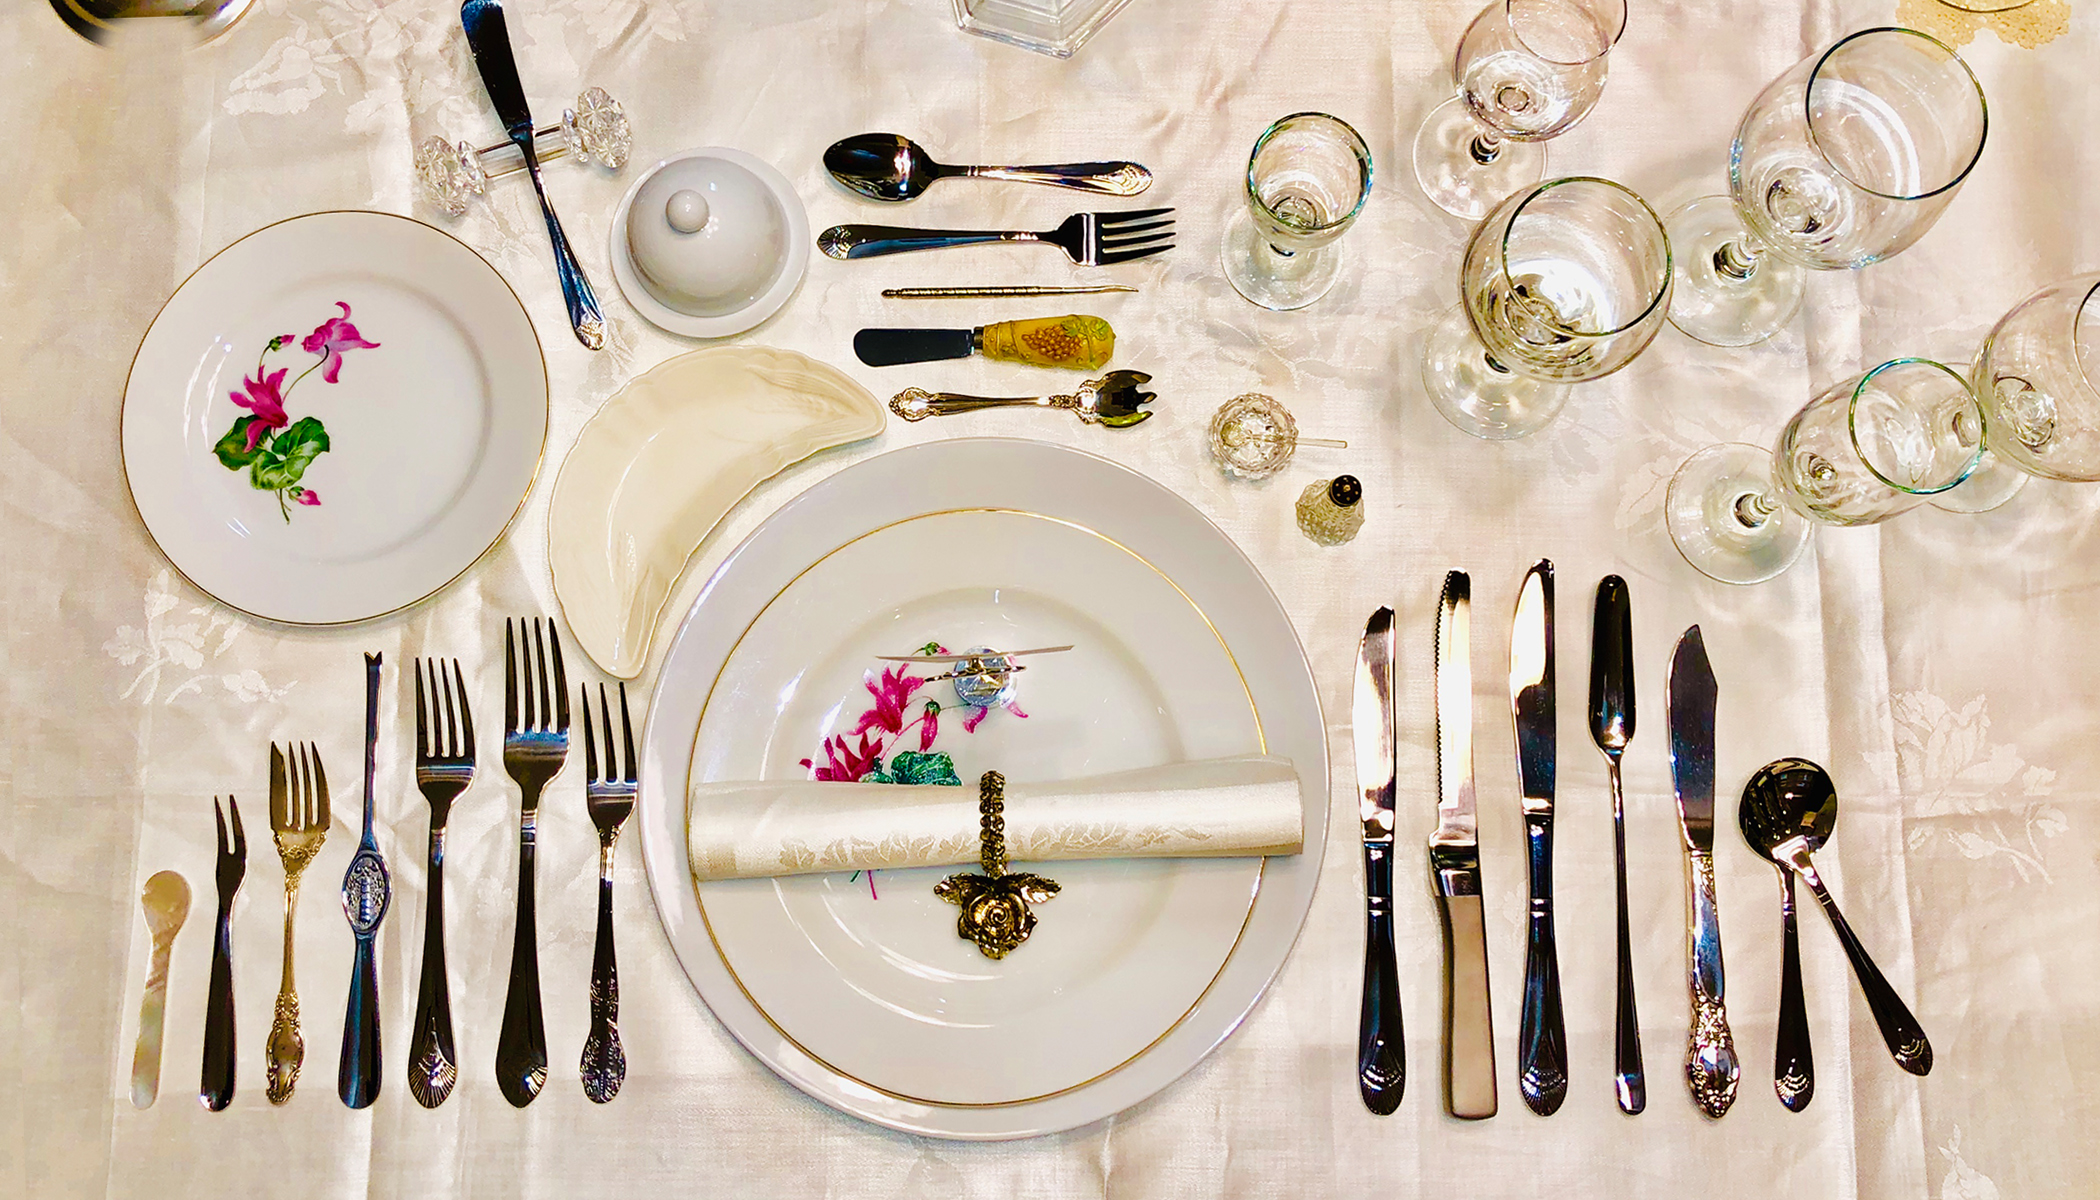 Dining Etiquette Self-Test: Revise Your Table Manners